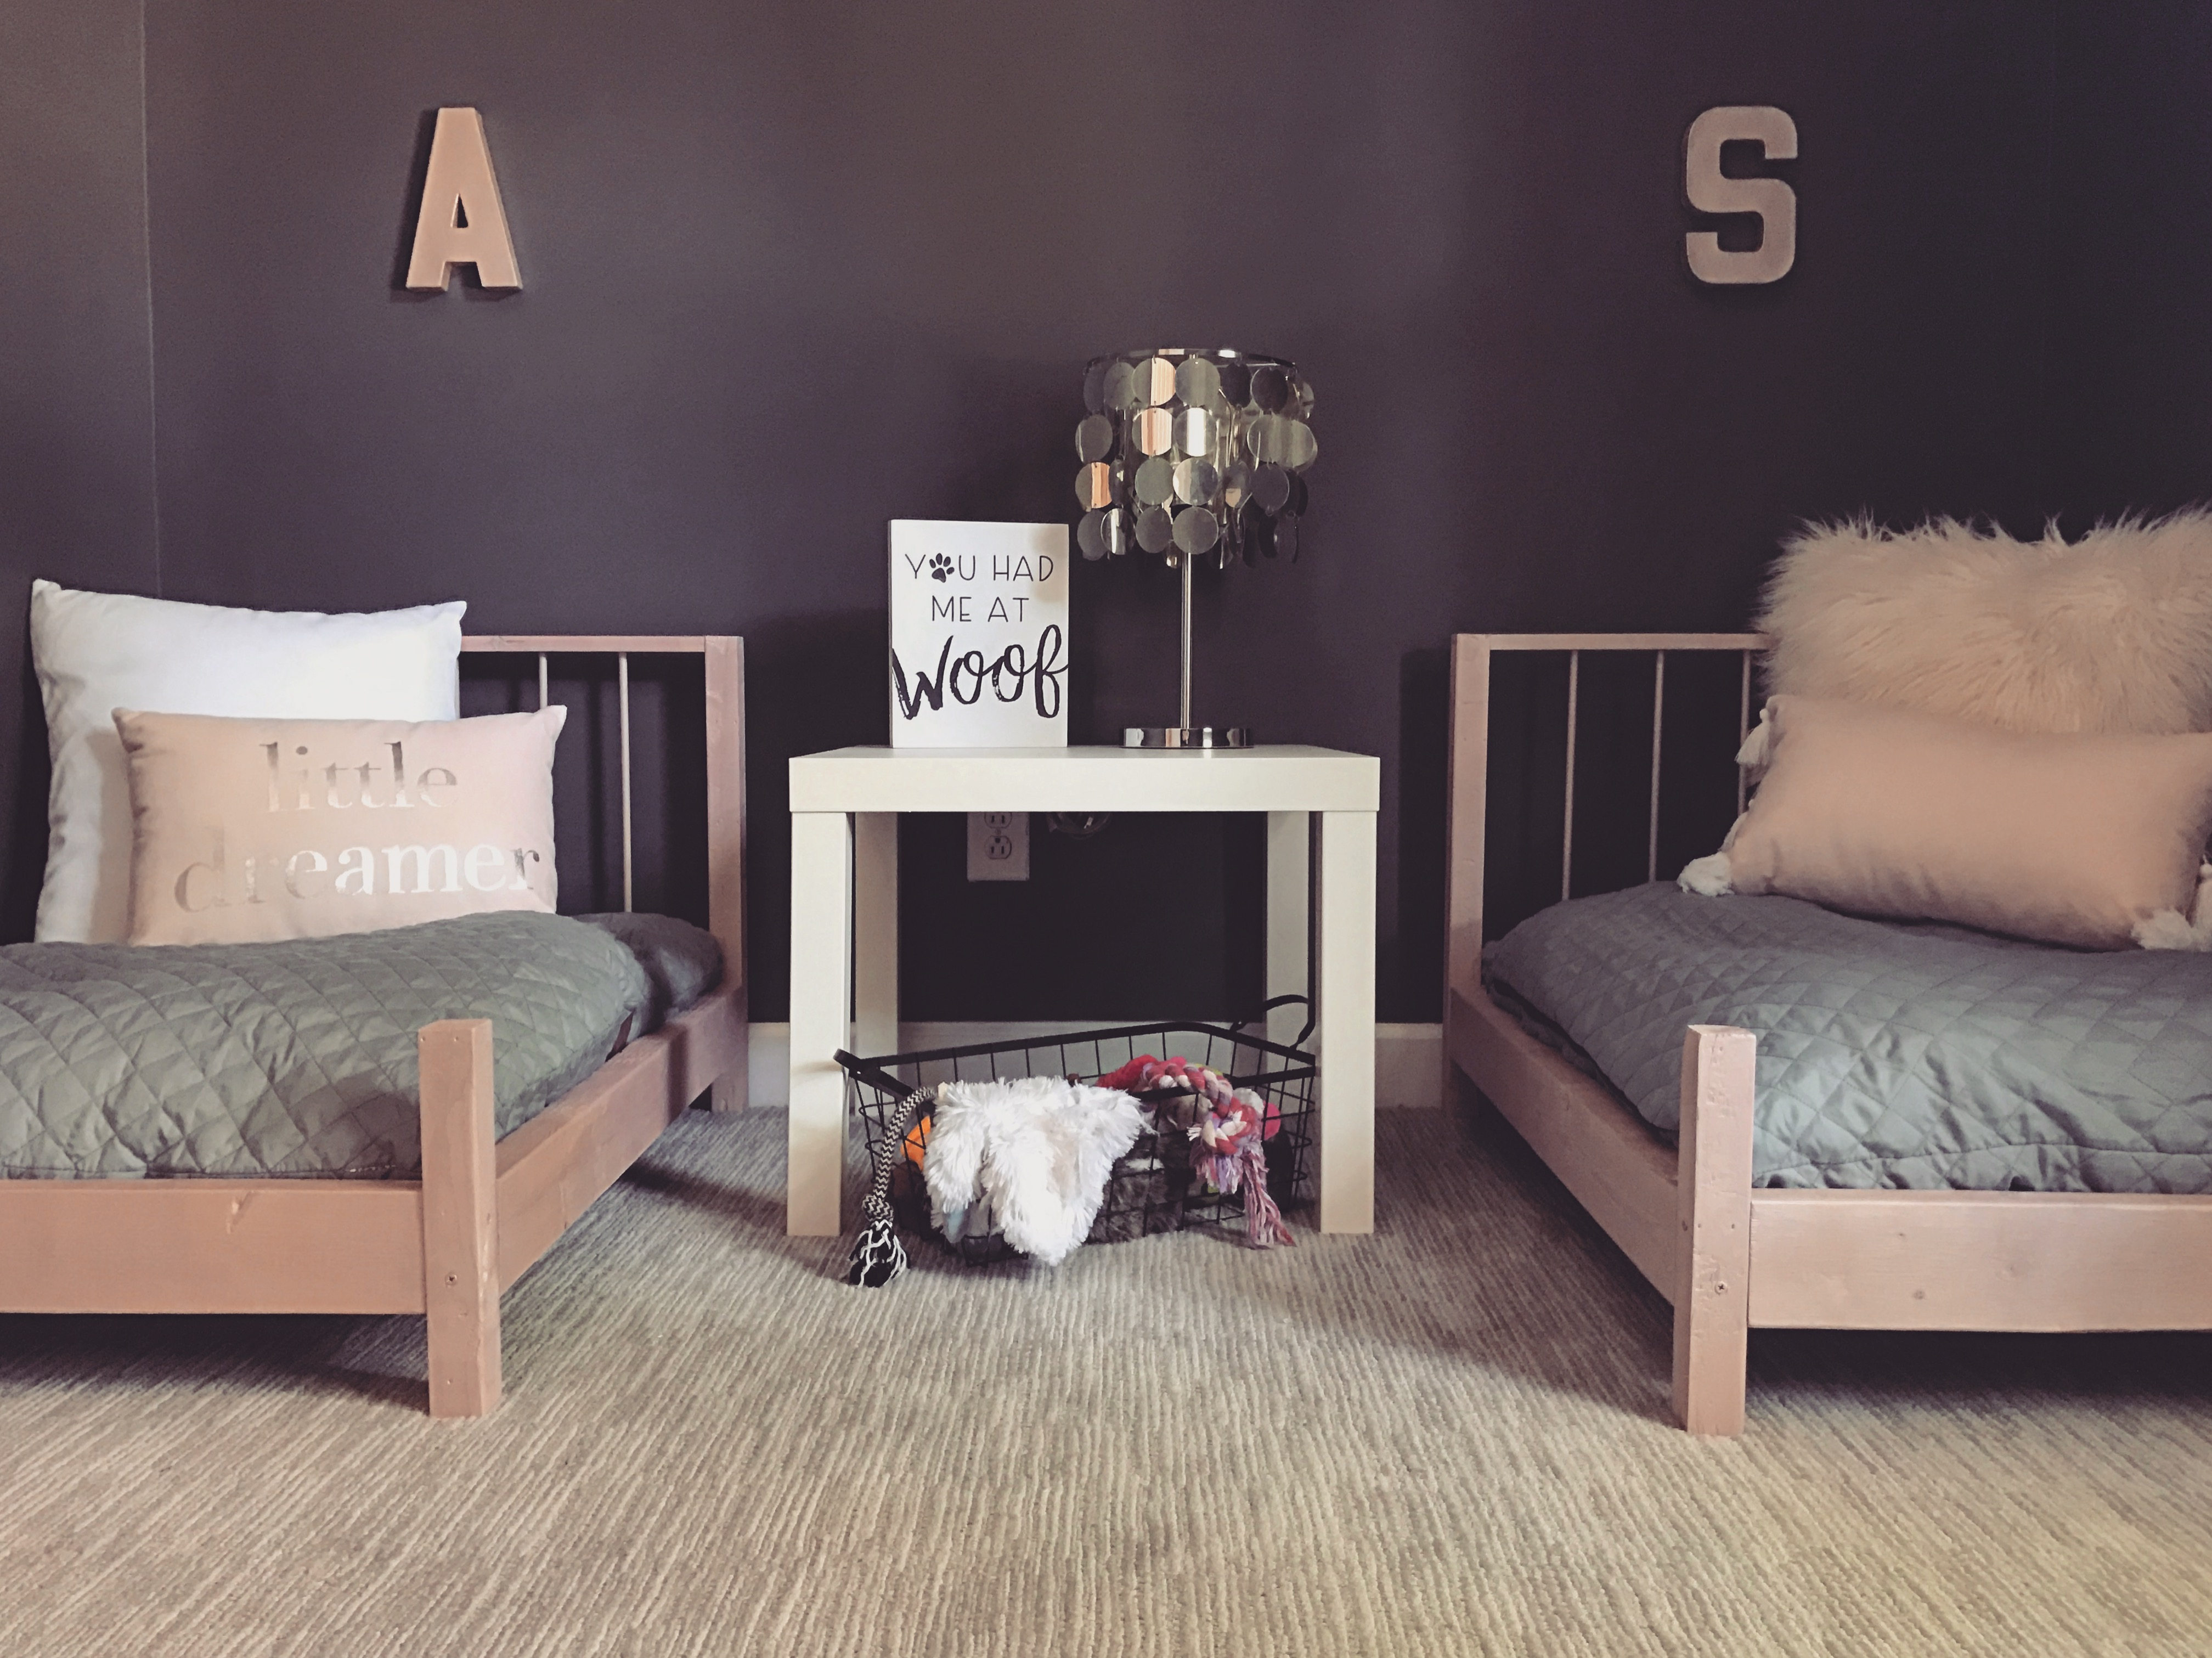 ... Standard Dog Beds Or Pillows, Or You Can Get Crafty And Fashion Your  Own U201cmattressu201d Out Of Upholstery Foam (Iu0027m Still Toying With The Idea Of DIYu0027ing  A ...